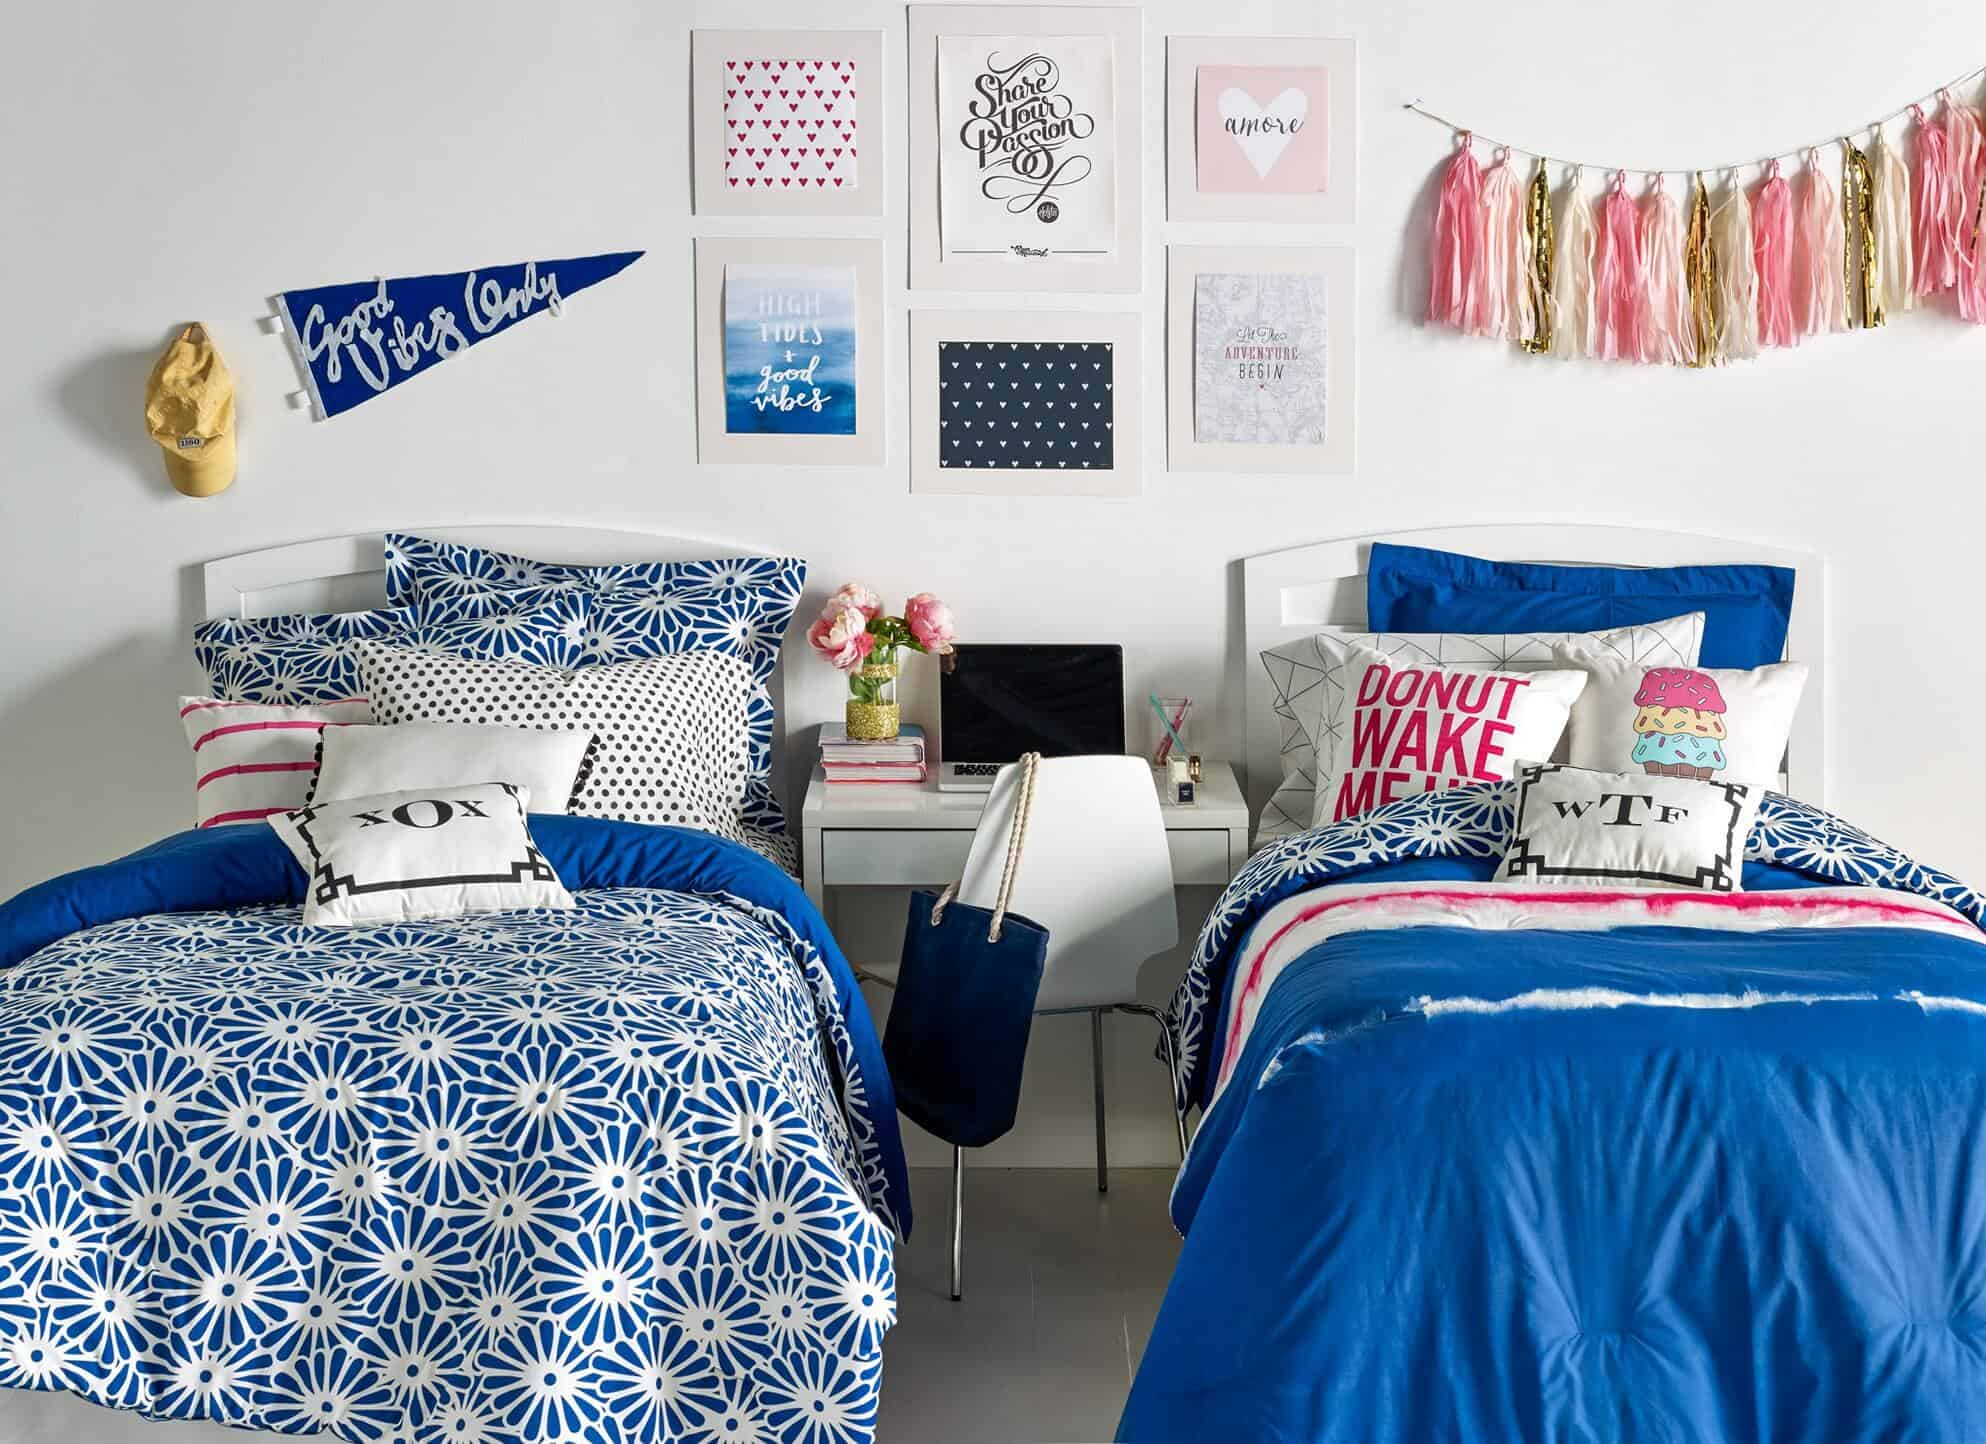 12 Tips to Decorate Your Dorm Space-9